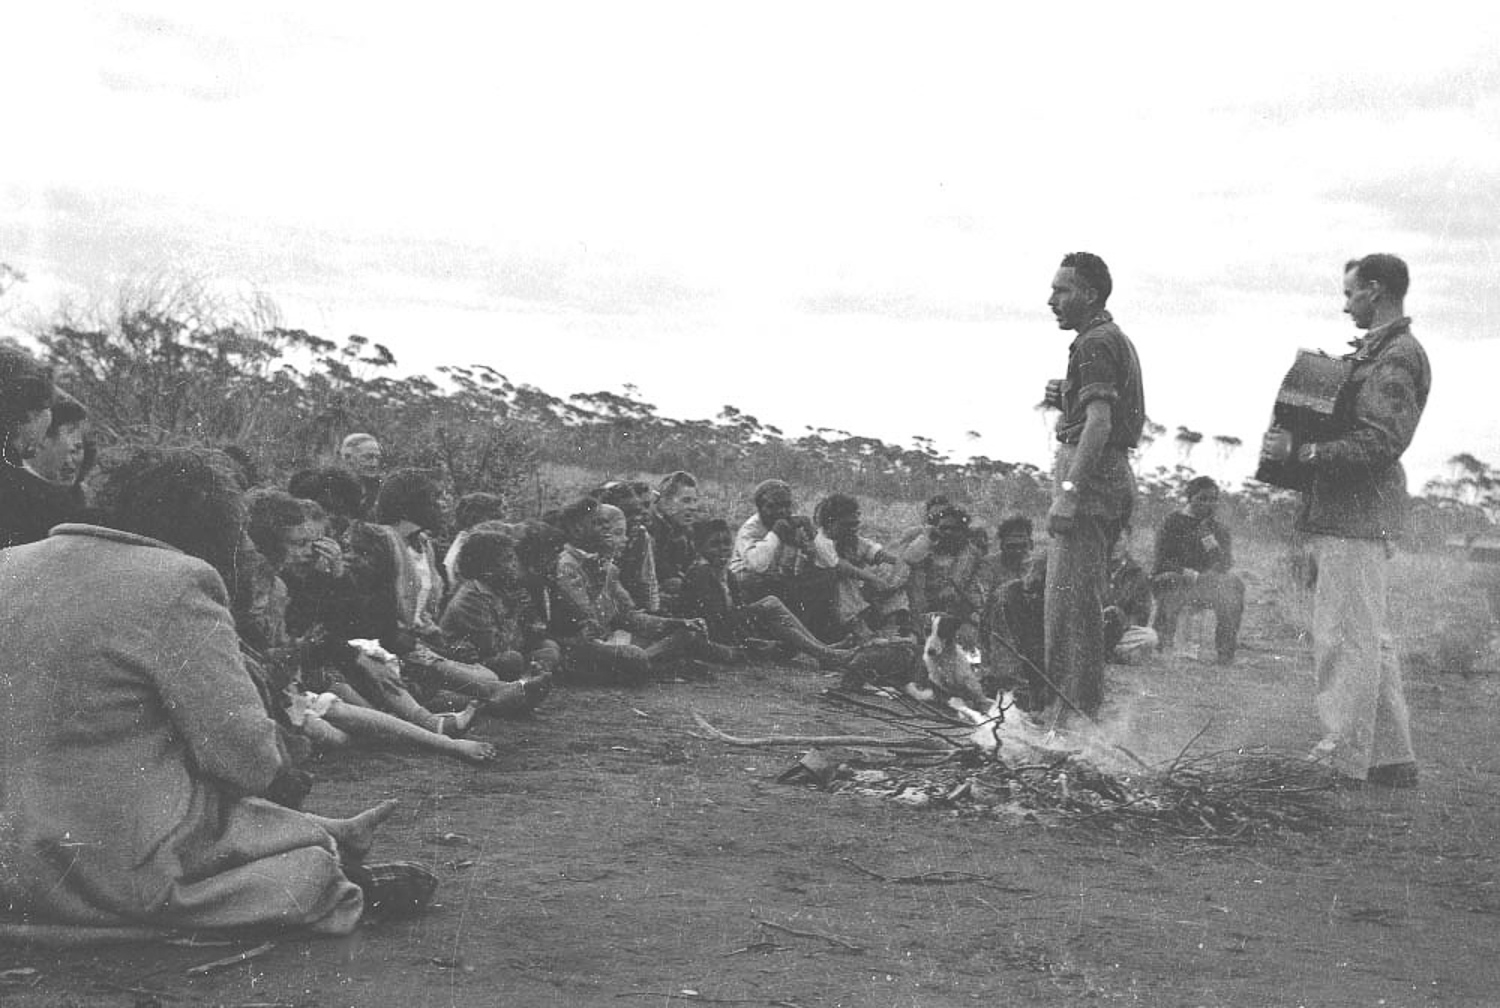 A church camp meeting at Cundeelee, led by missionary, teacher and photographer Robert McKeich. Anangu would set up bush camps around the mission site, and would be visited by missionaries who would hold church services in an attempt to convert Anangu to Christianity.